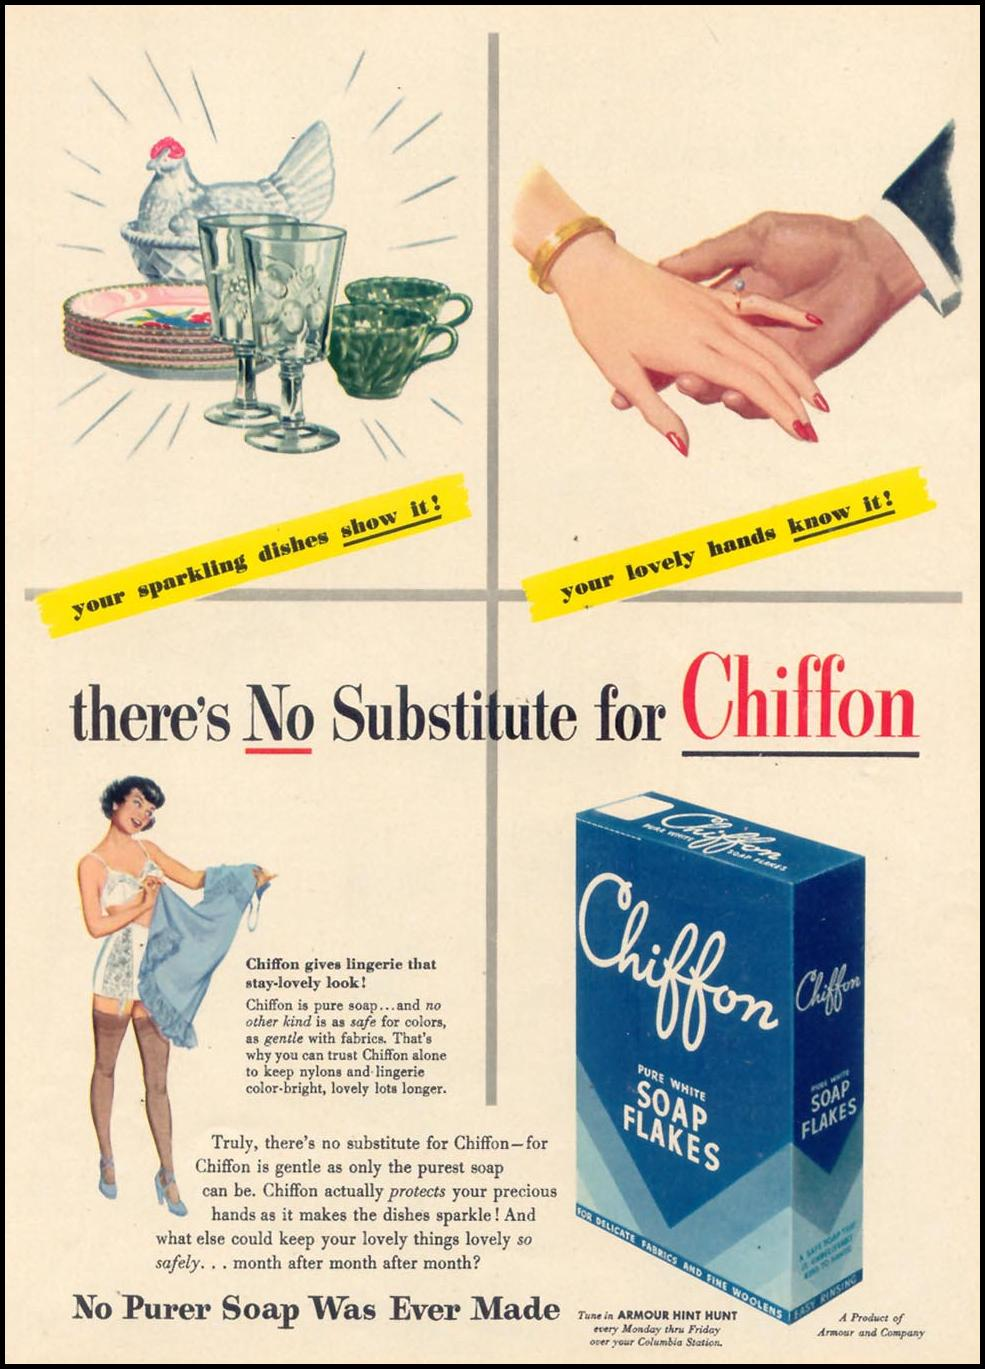 CHIFFON SOAP FLAKES WOMAN'S DAY 09/01/1948 p. 55